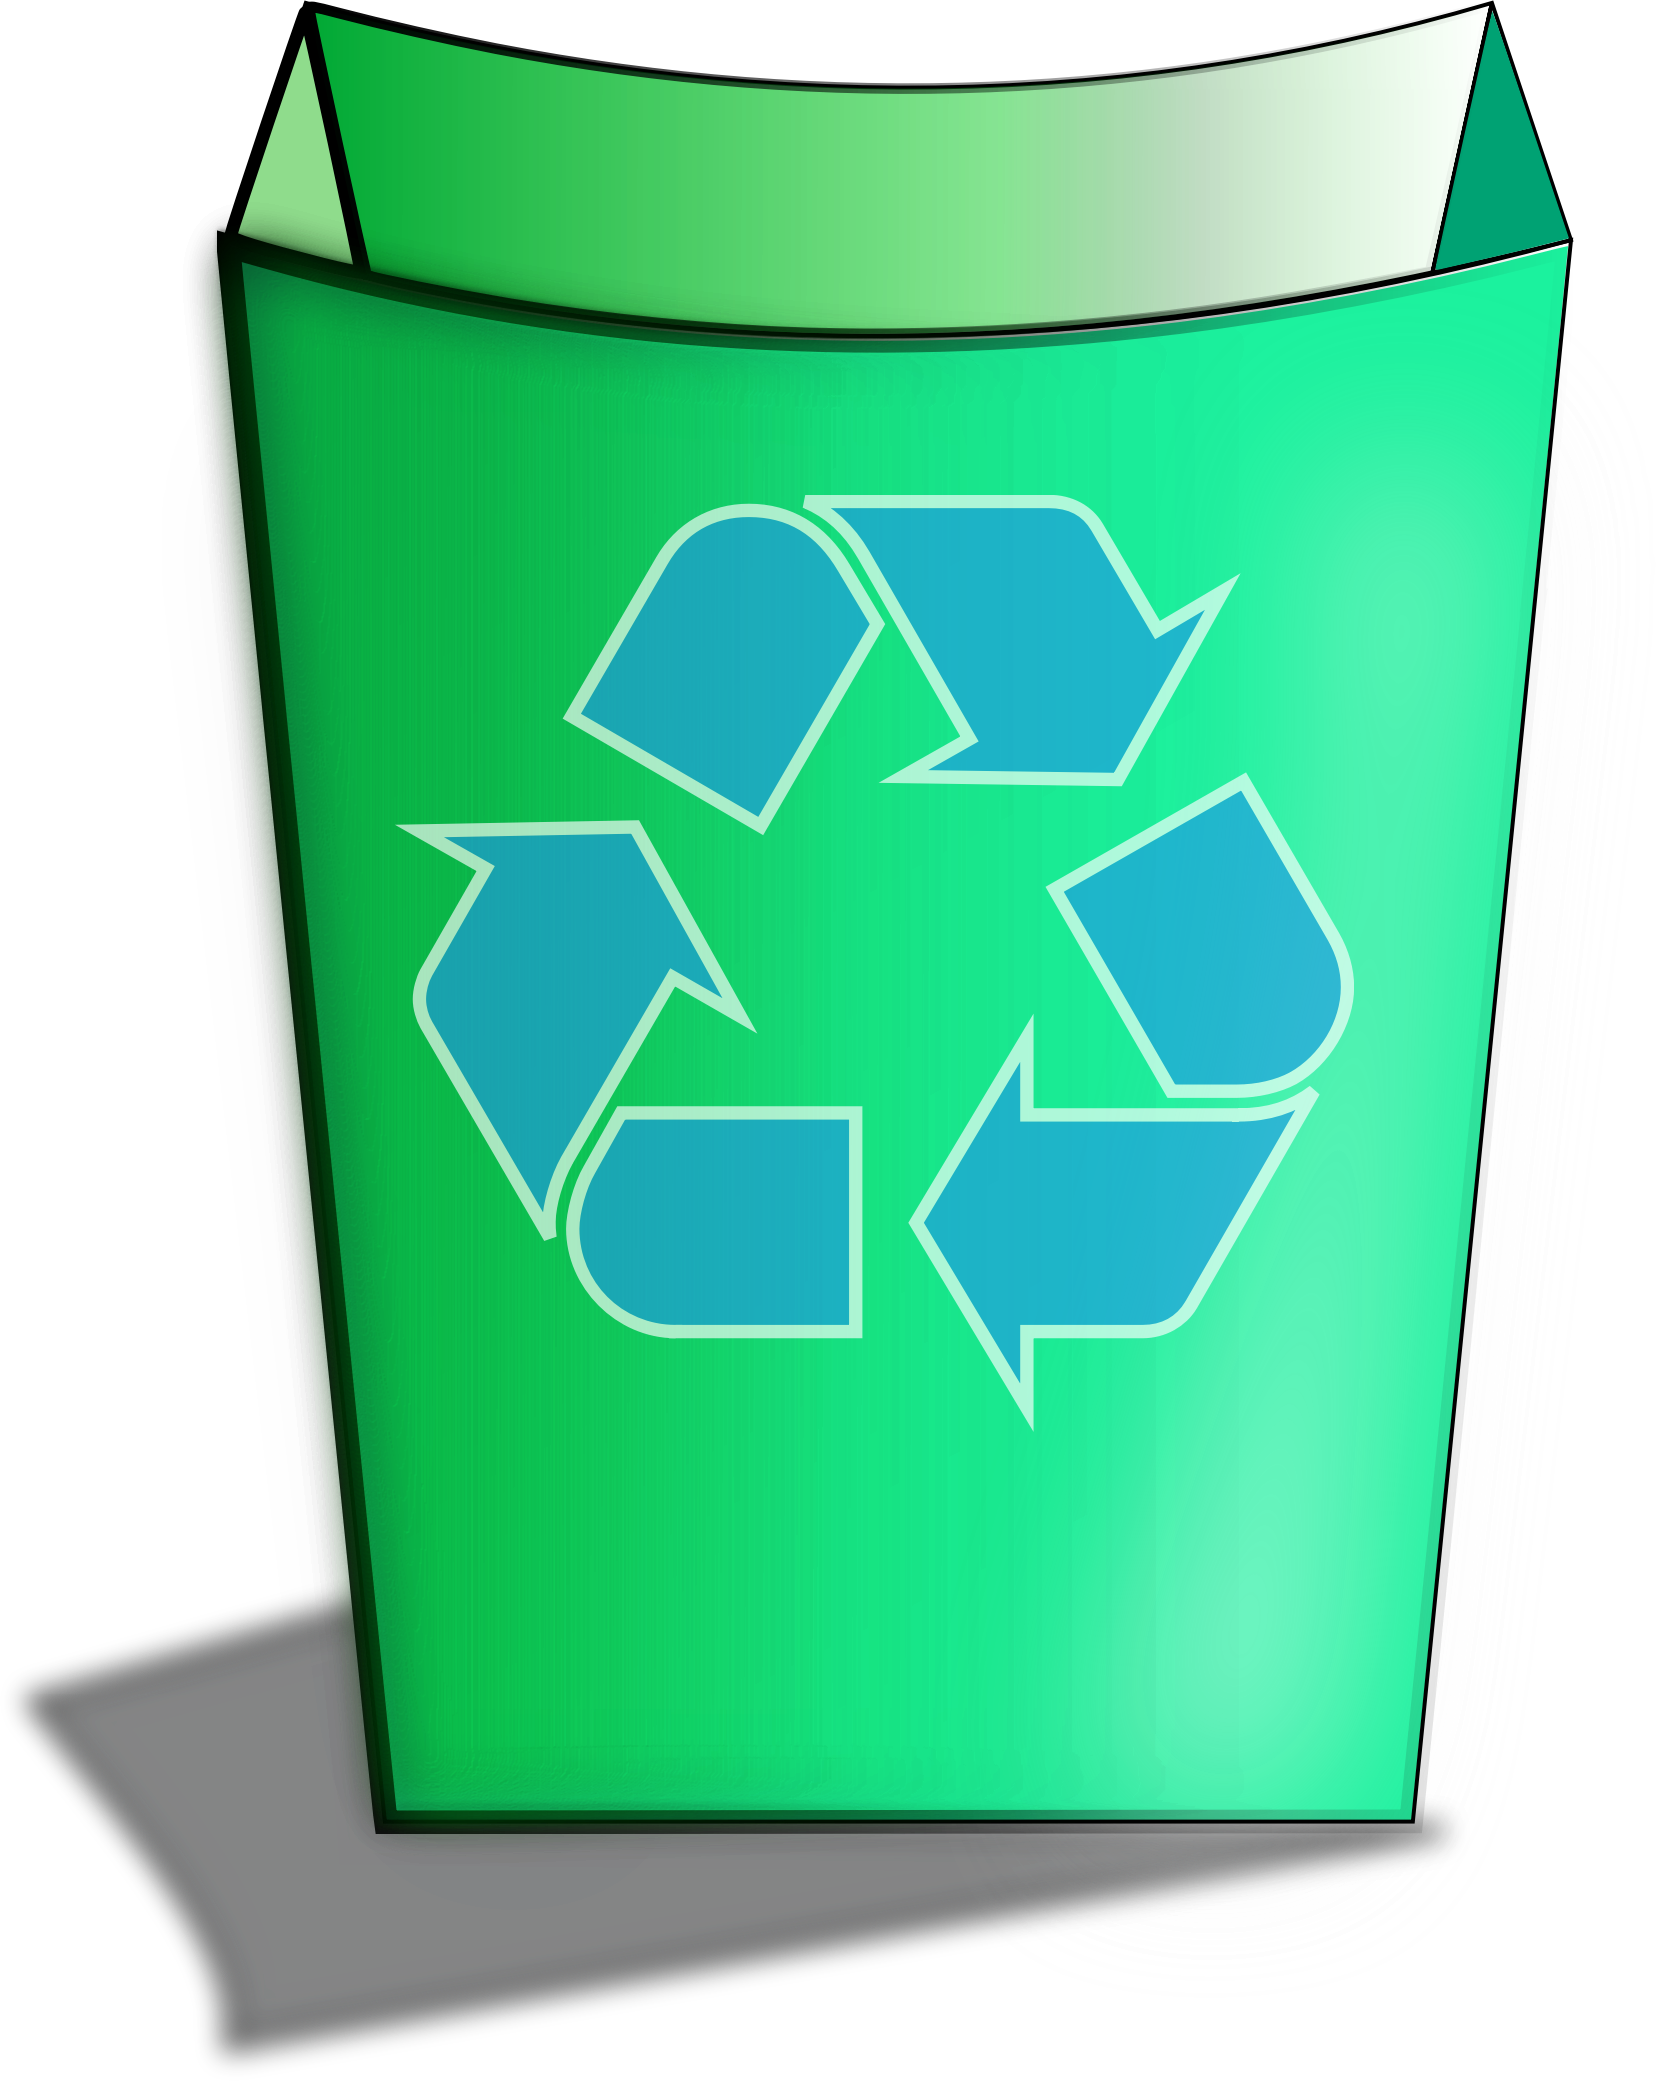 Green Recycle Bin by isaiah658